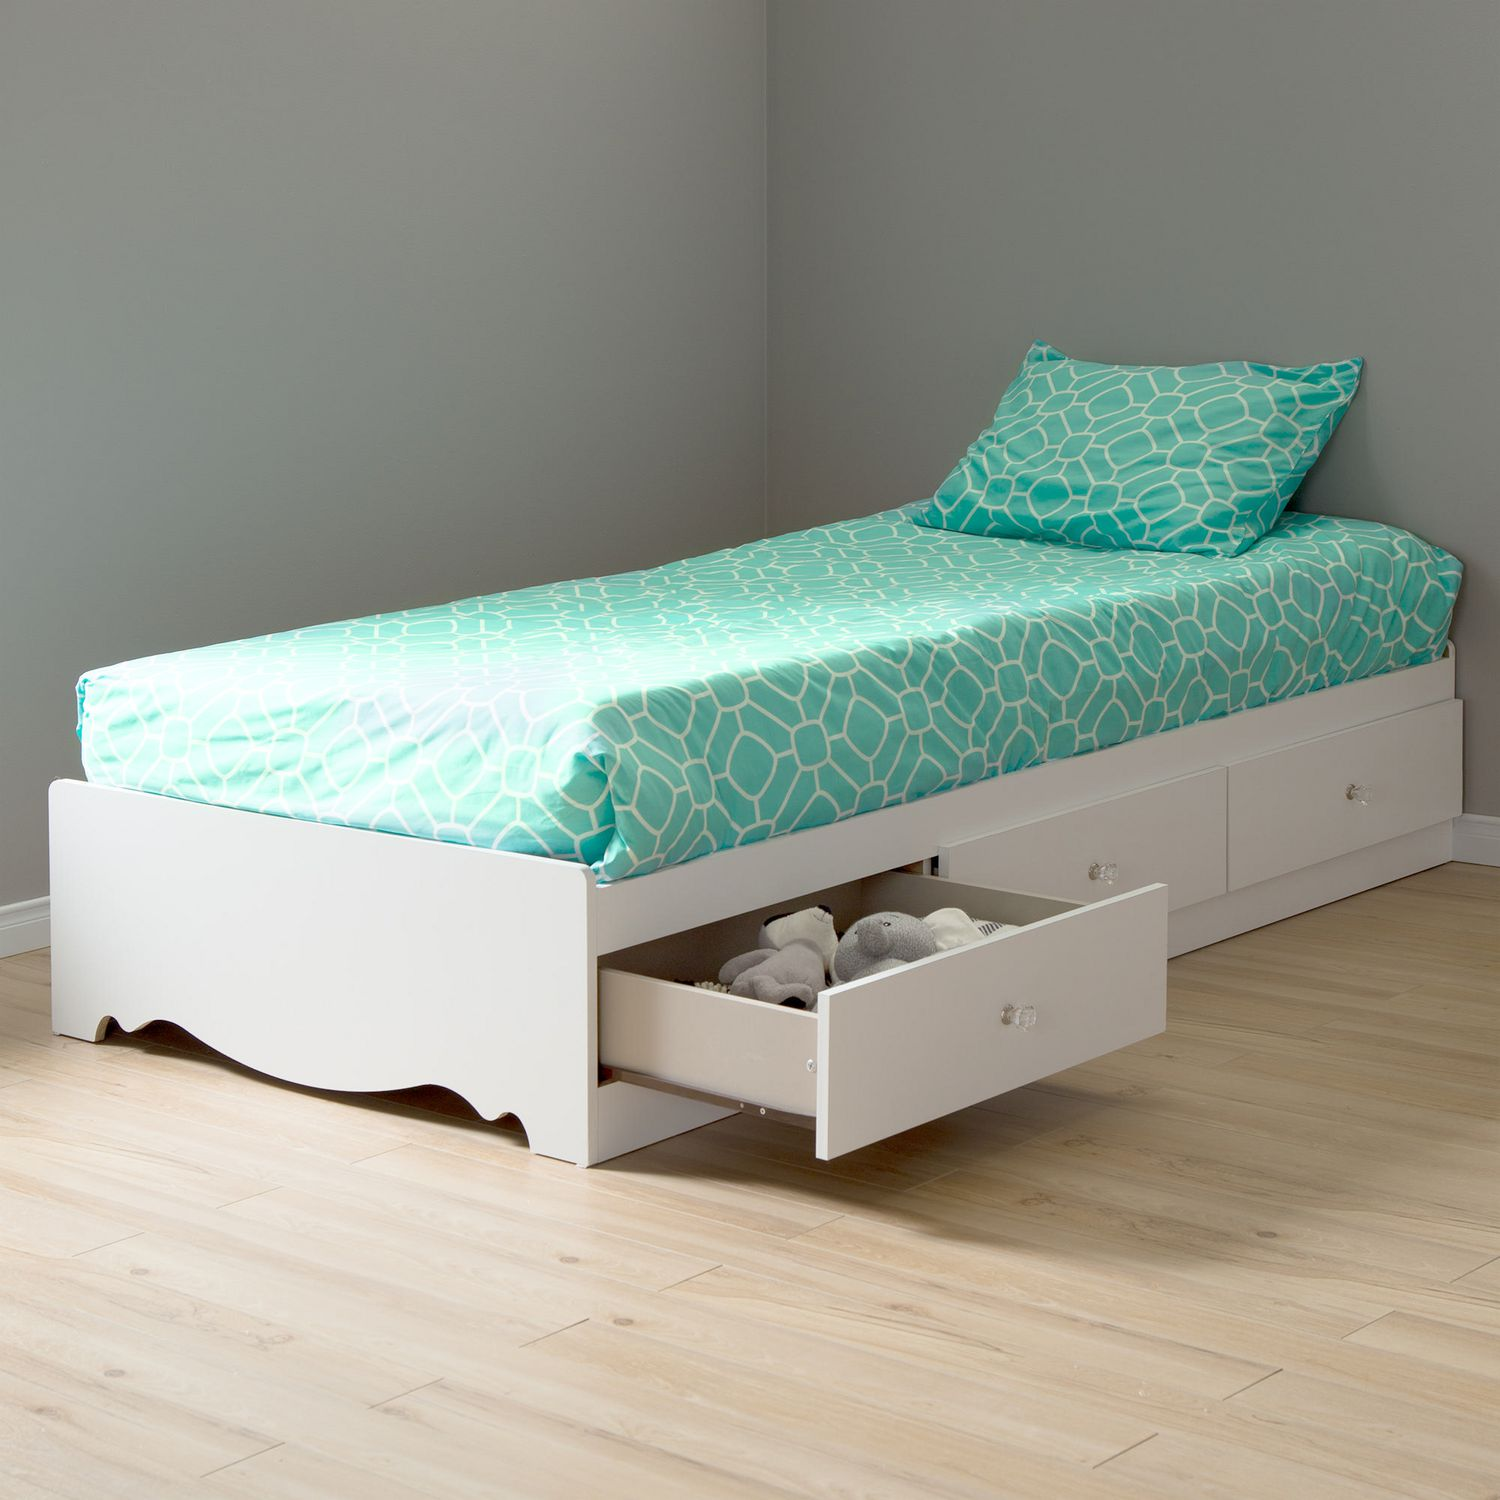 South Shore Crystal Twin Storage Bed 39 In With 3 Drawers White Walmart Canada